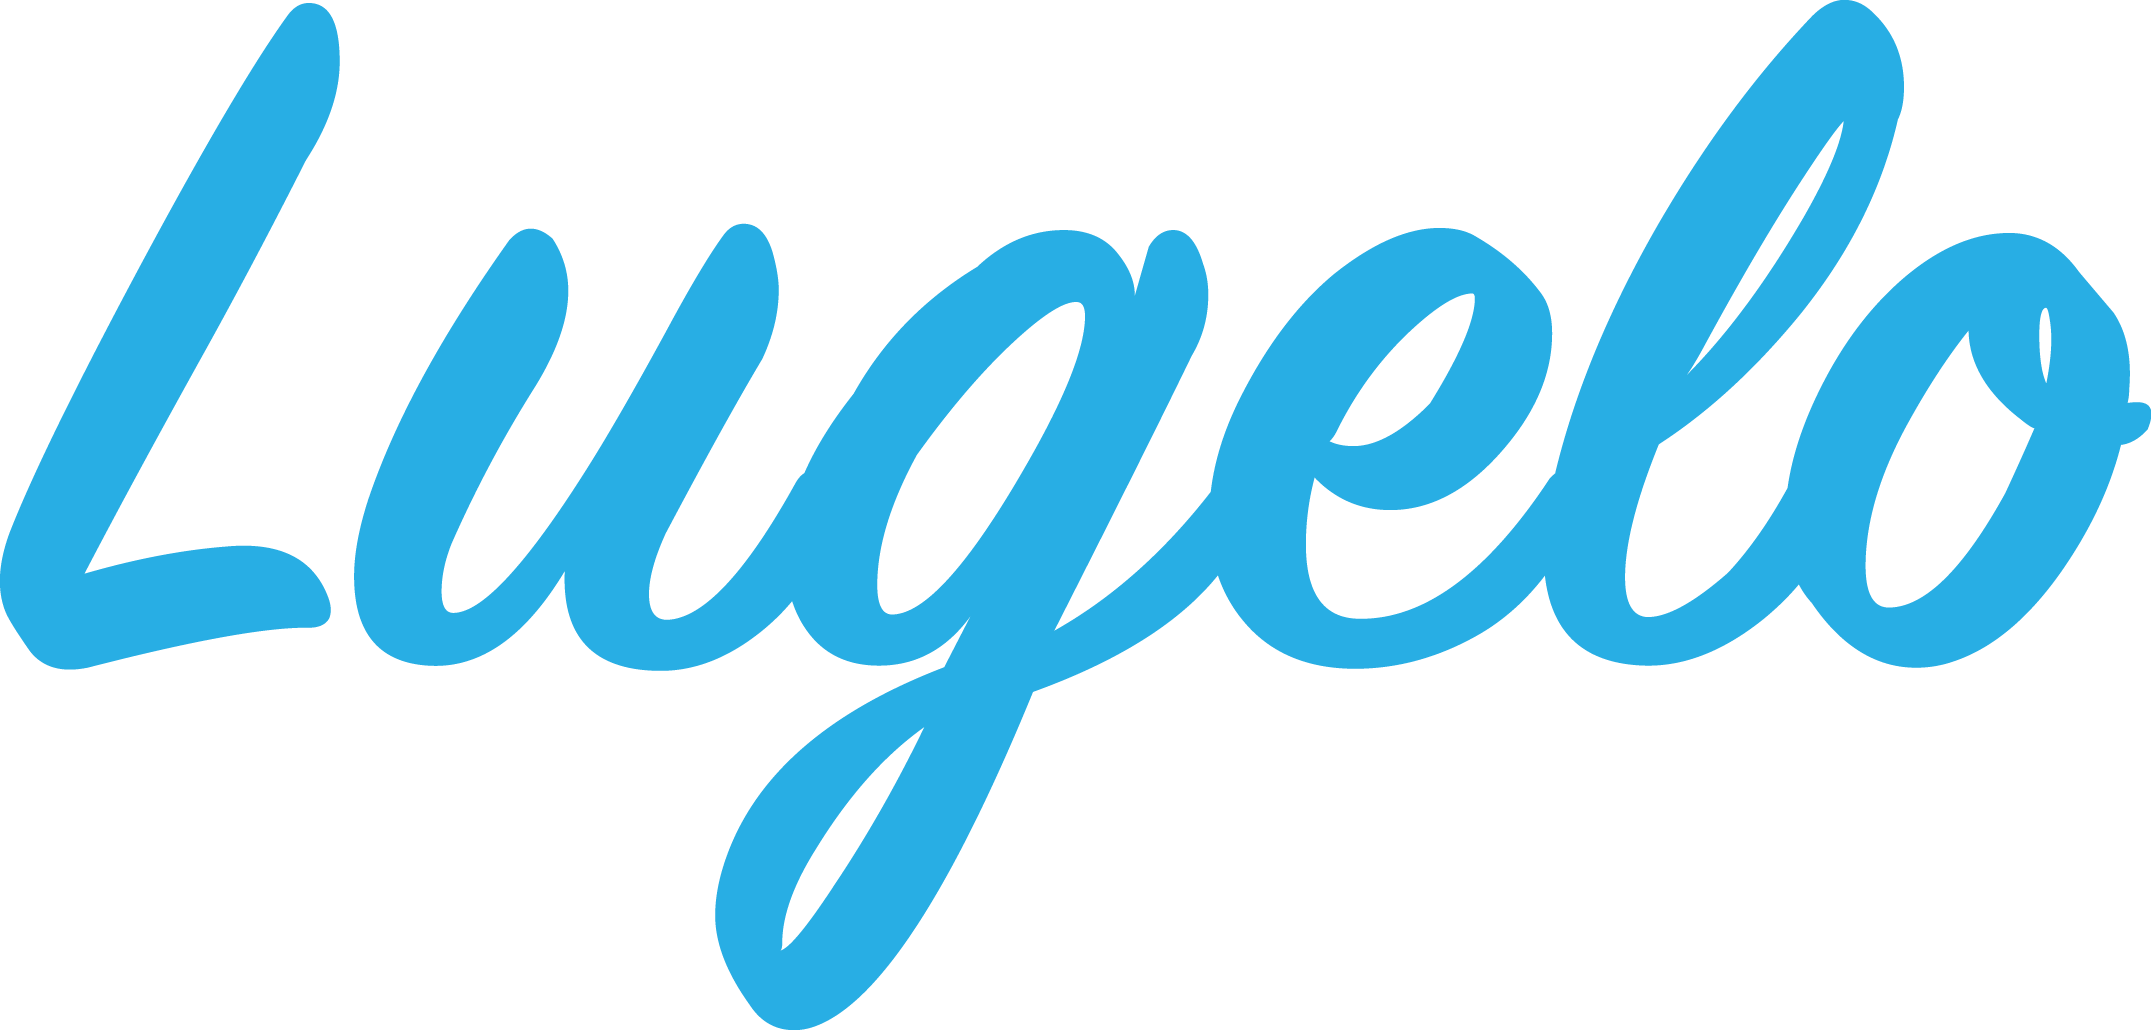 Lugelo, the eJournal and Storytelling App, Launches eBook and Offline Mode Features to Easily Create and Share Stories with Family and Friends.